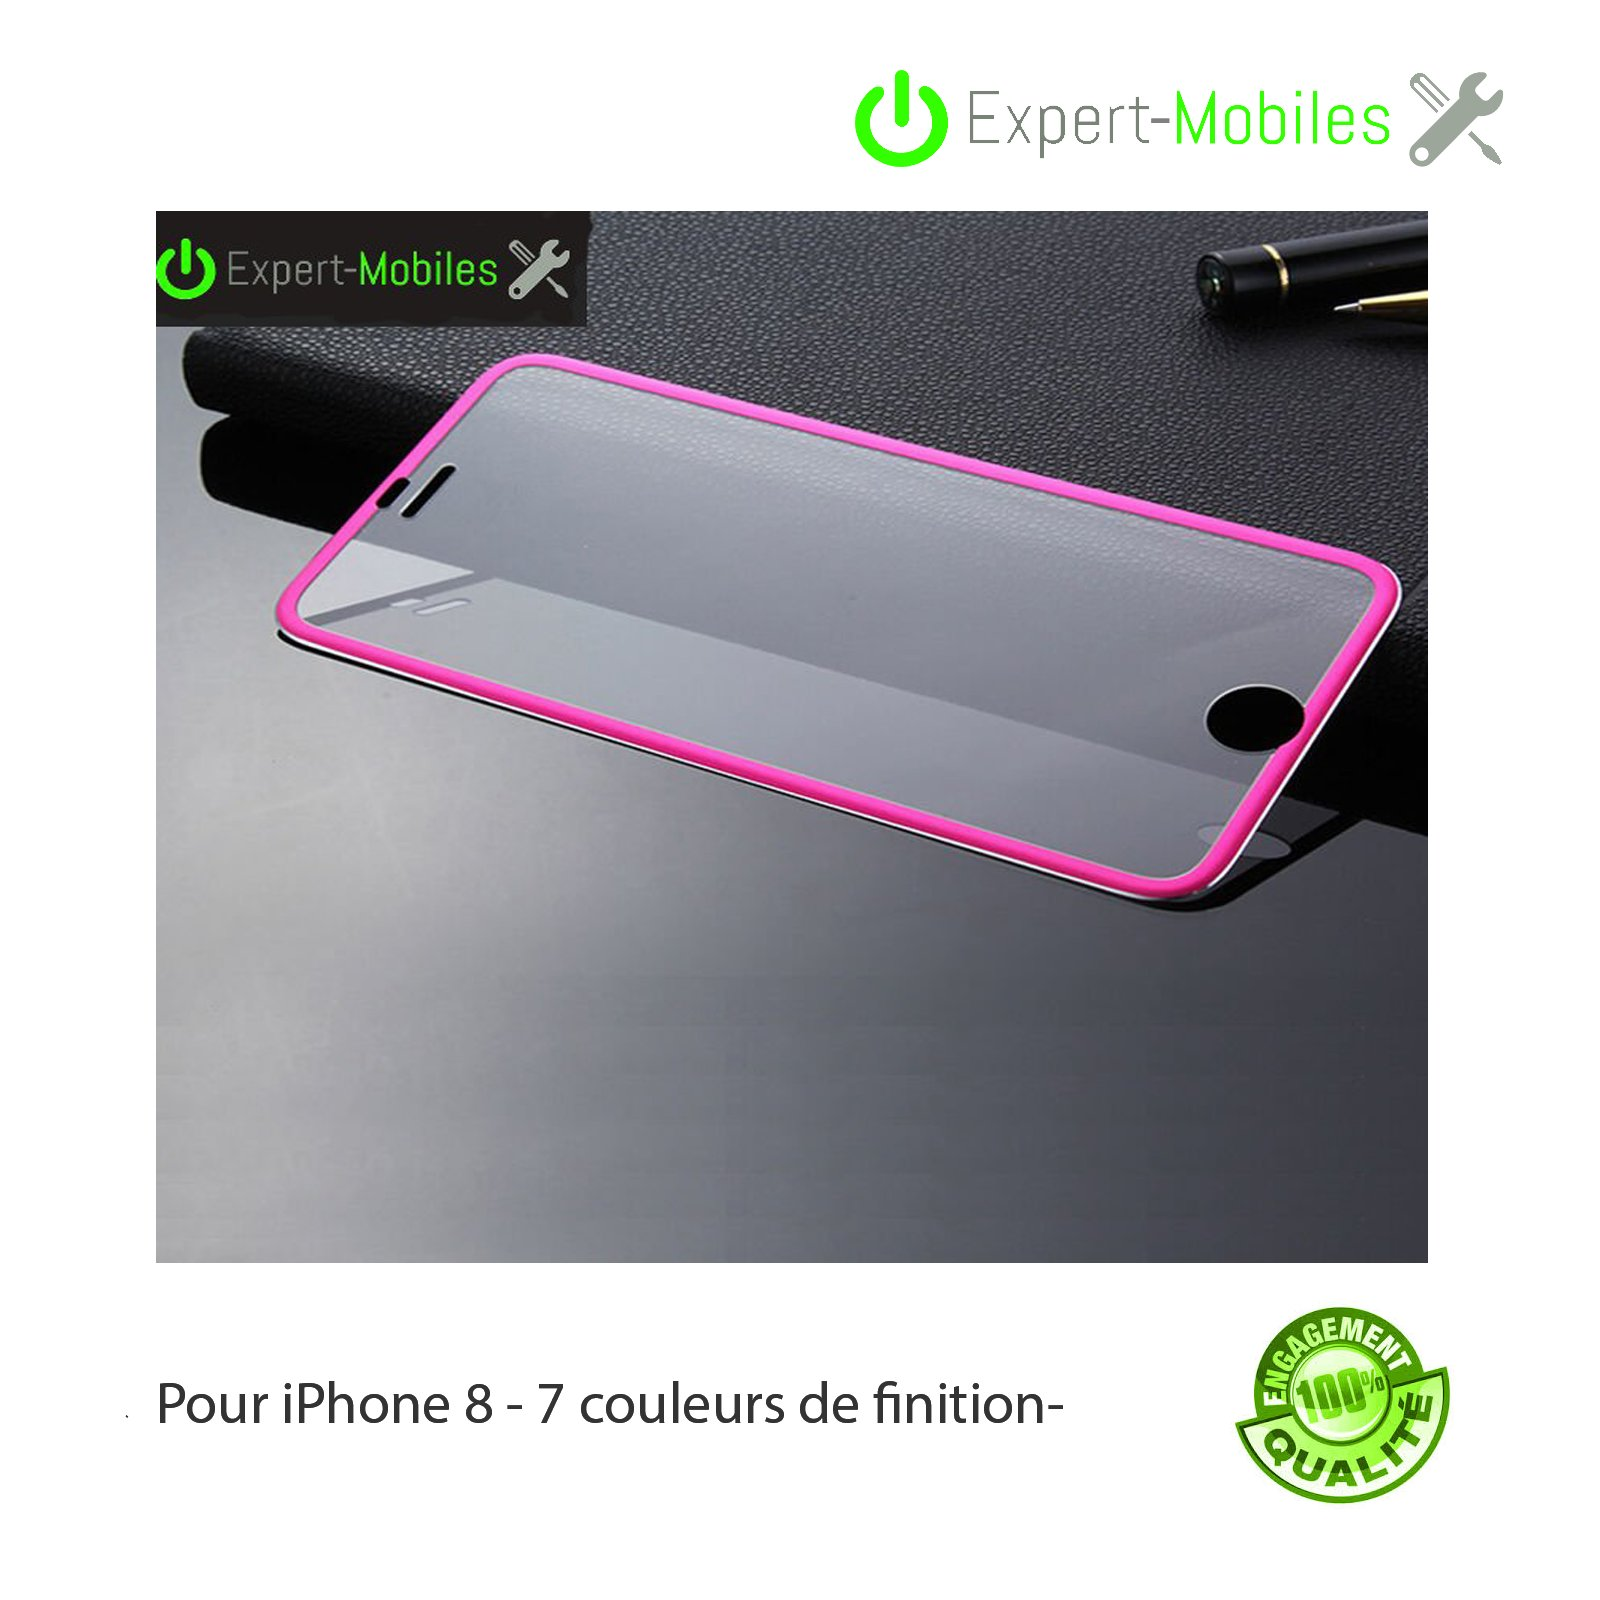 Verre tremp iphone 8 titanium em 2 1 expert mobiles - Reparation telephone lorient ...